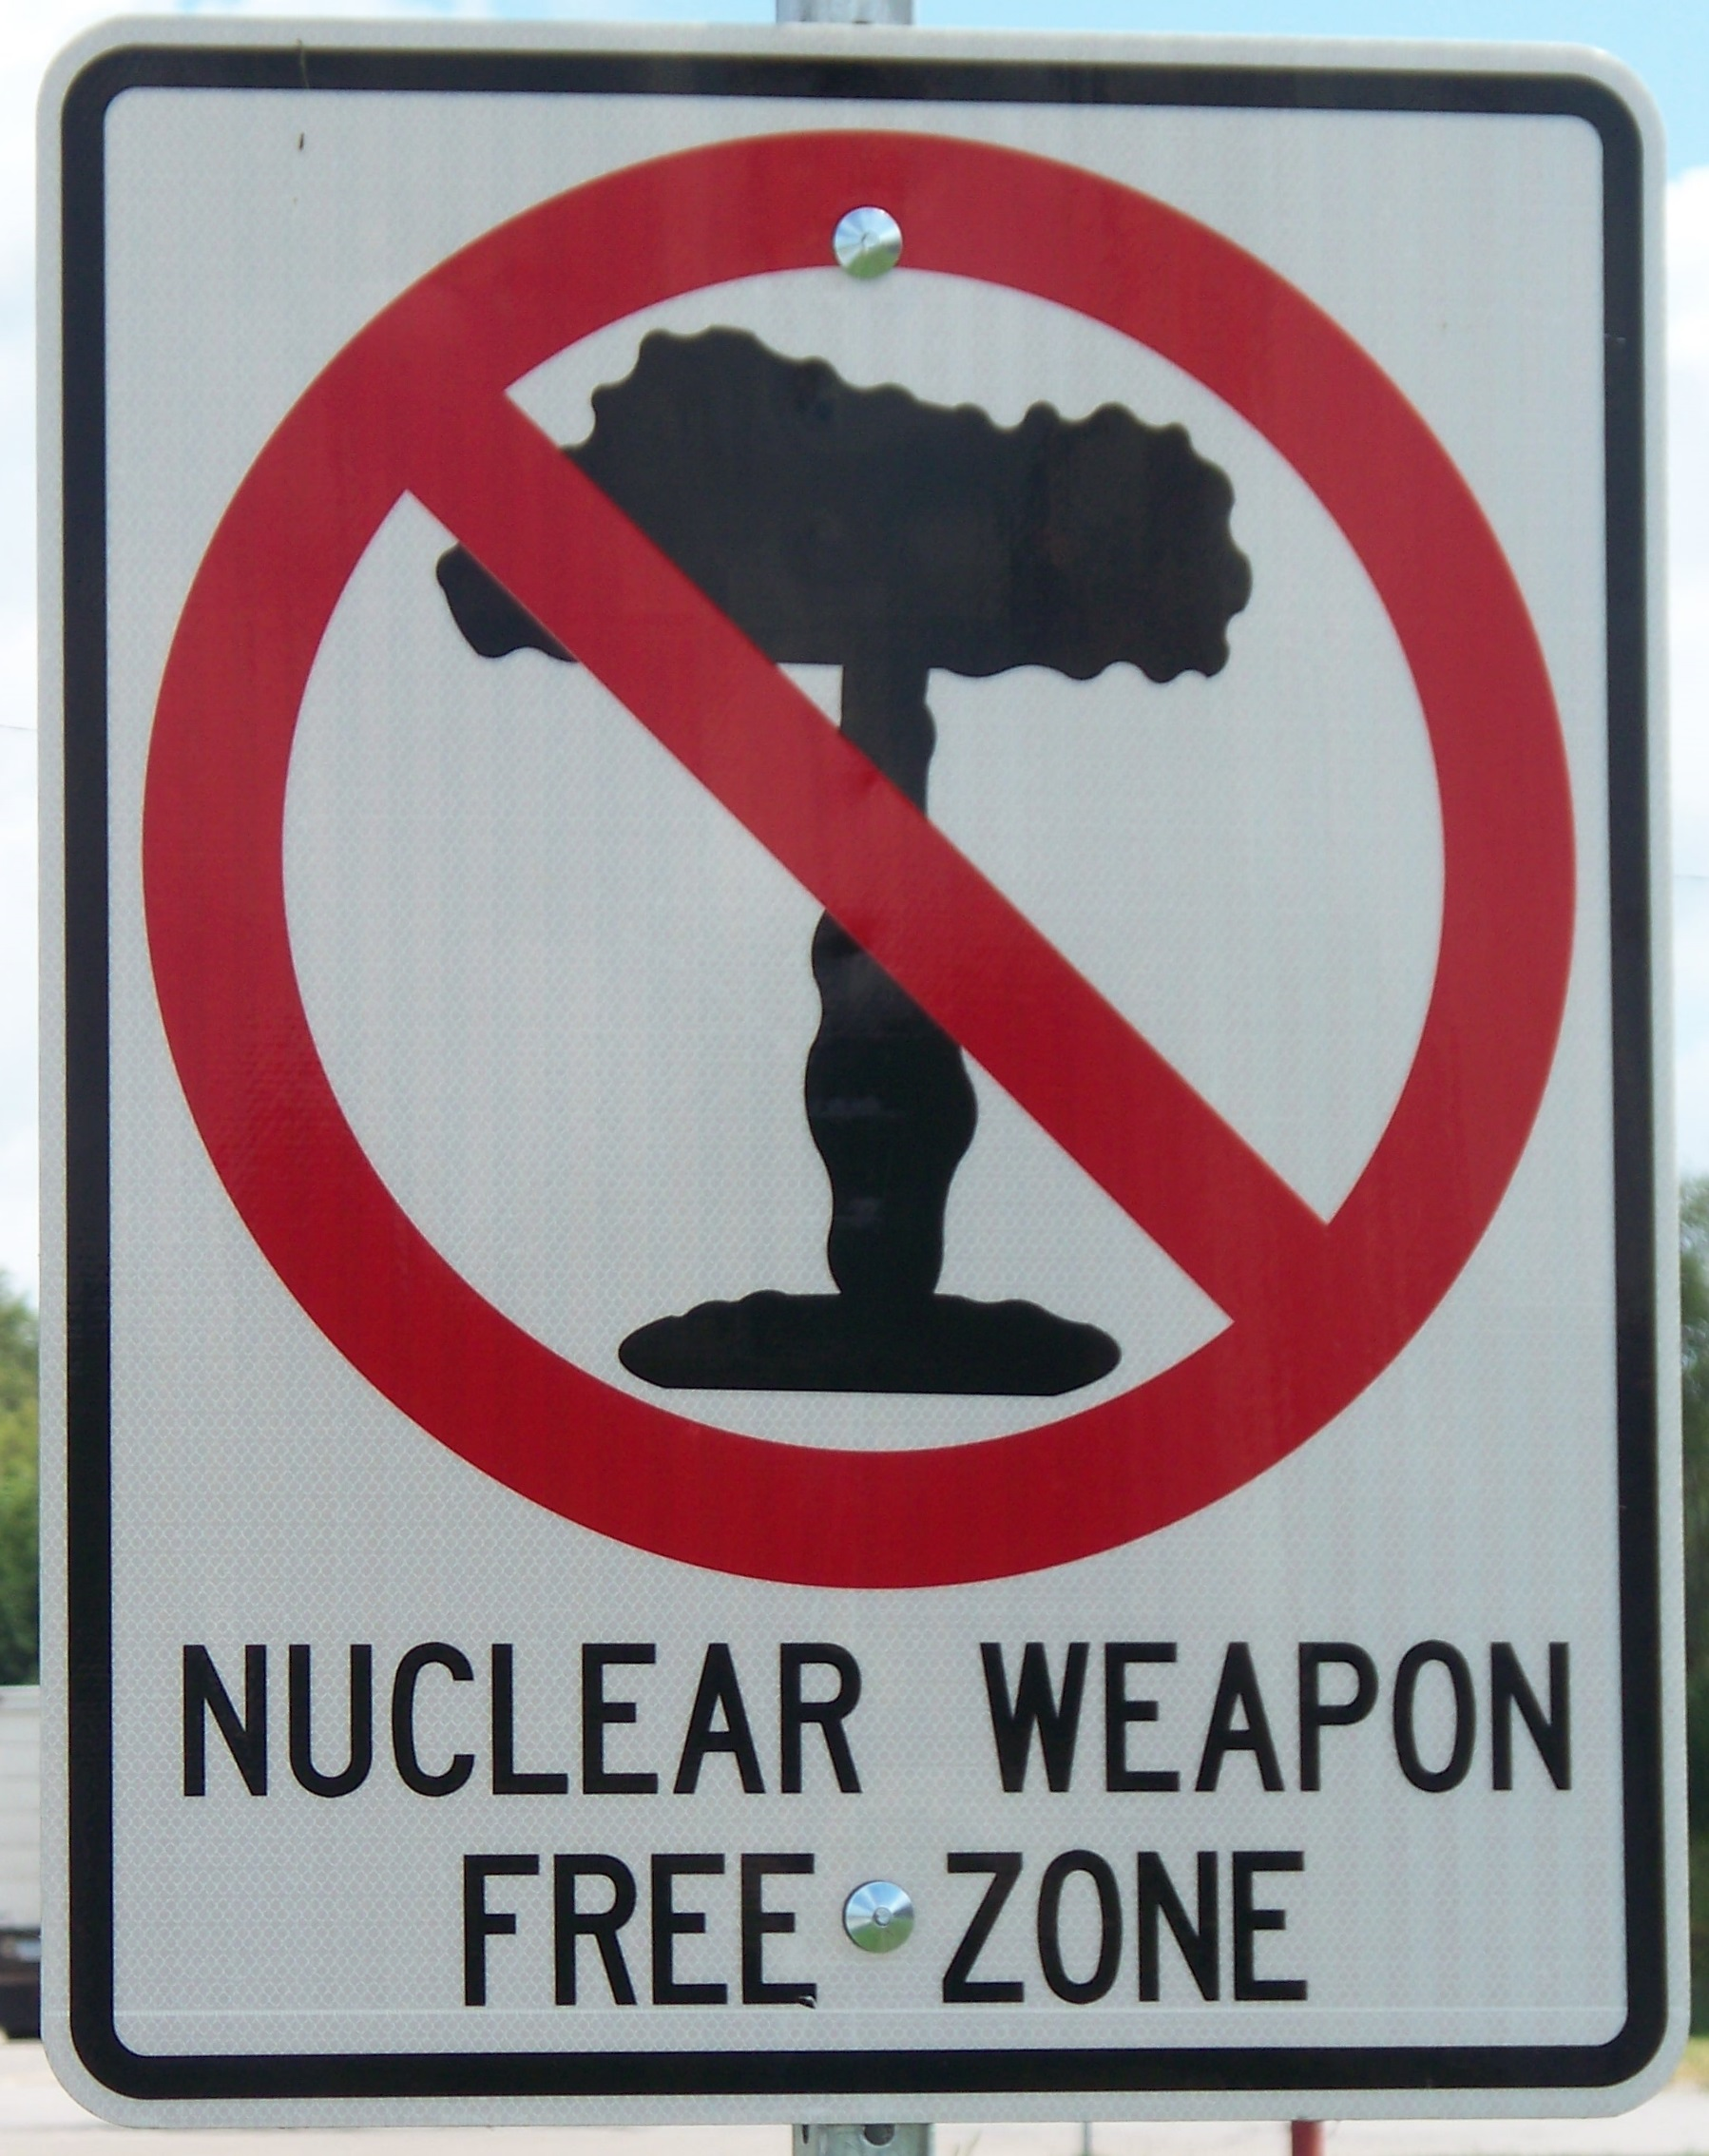 we must abolish nuclear weapons essay 10 reaons to abolish nuclear weapons  we each have a responsibility to our children, grandchildren and future generations to end the threat that nuclear weapons pose to humanity and all life .